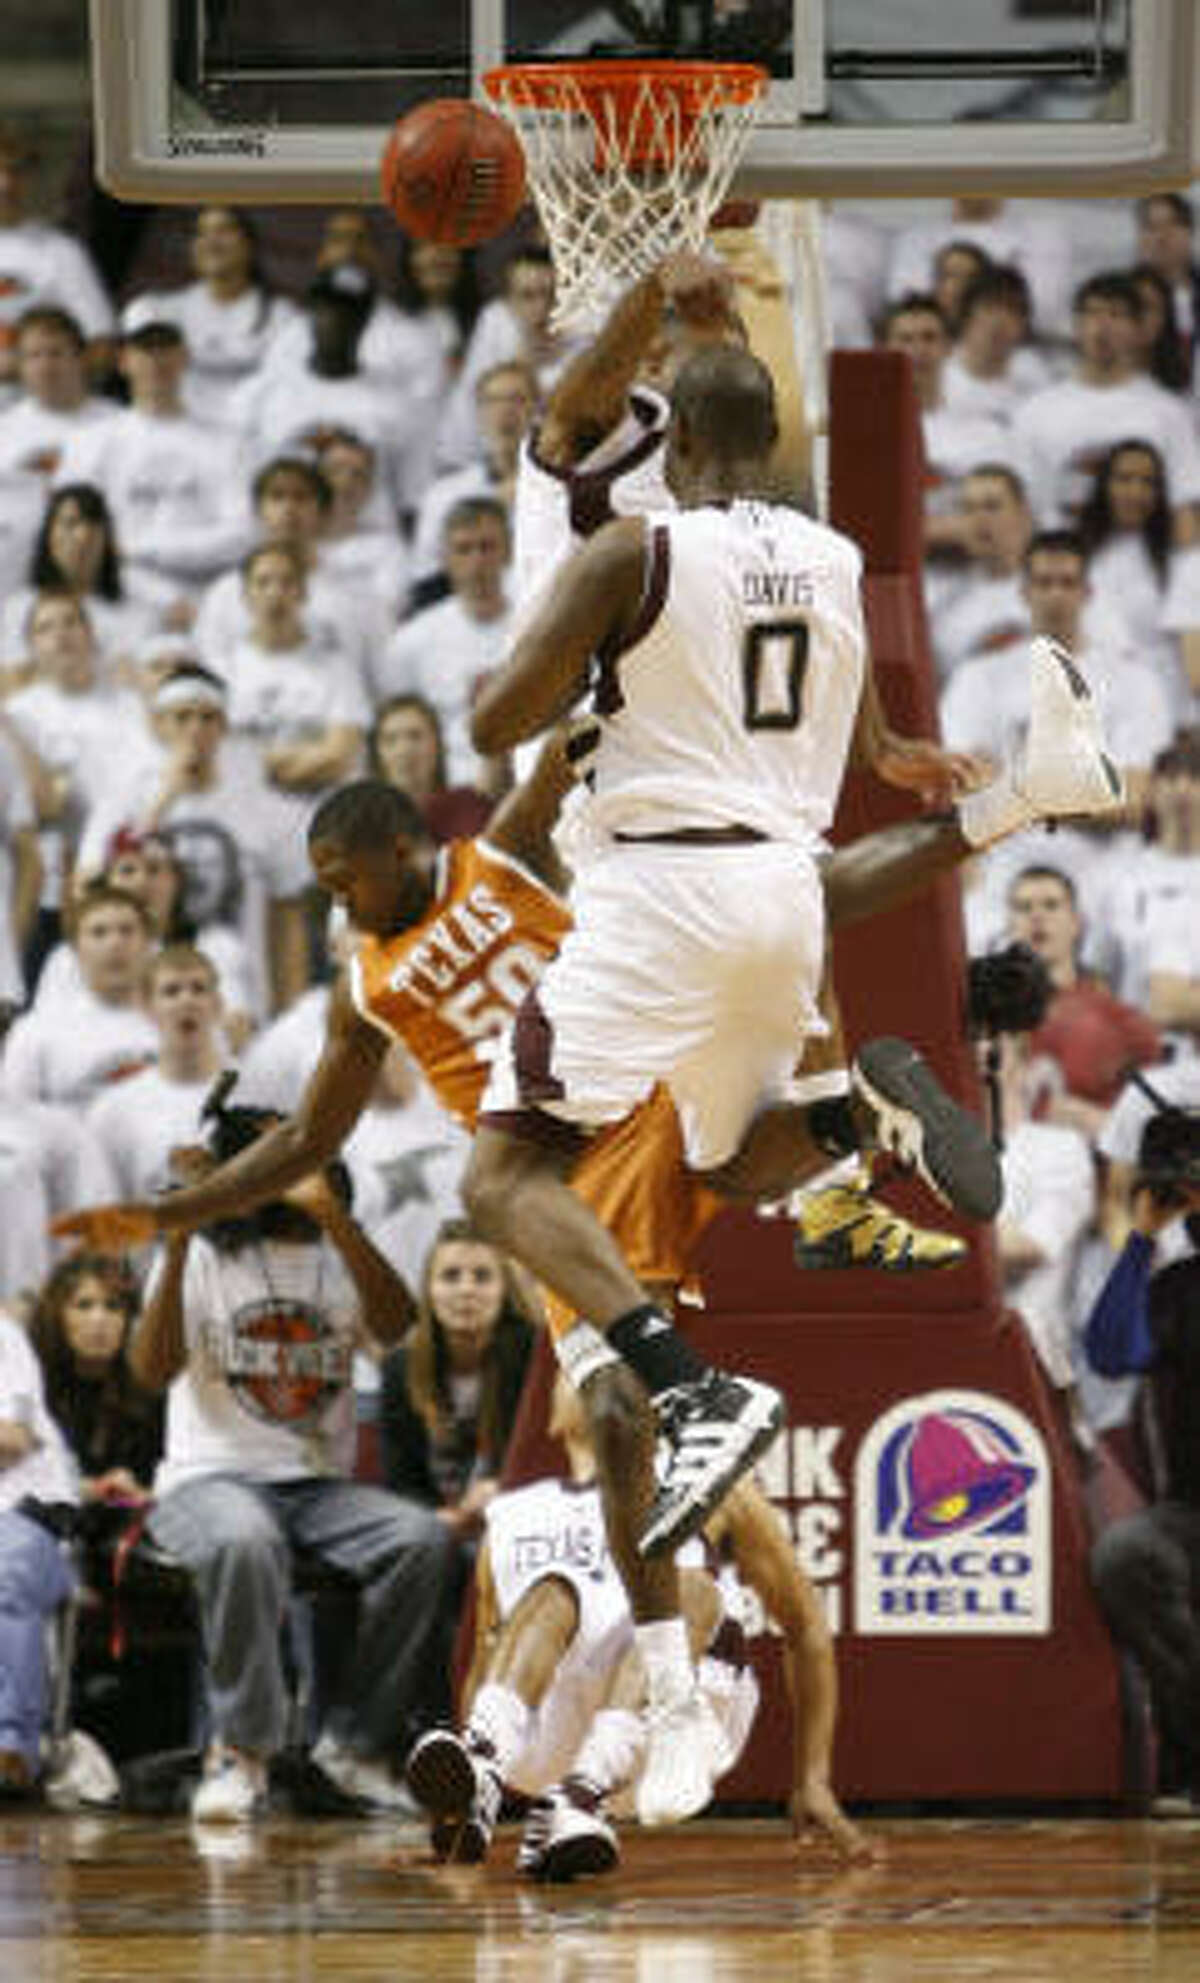 Texas guard J'Covan Brown (50) looses his footing on a drive to the basket and hurts his head in the second half. He was taken off the court in a stretcher.